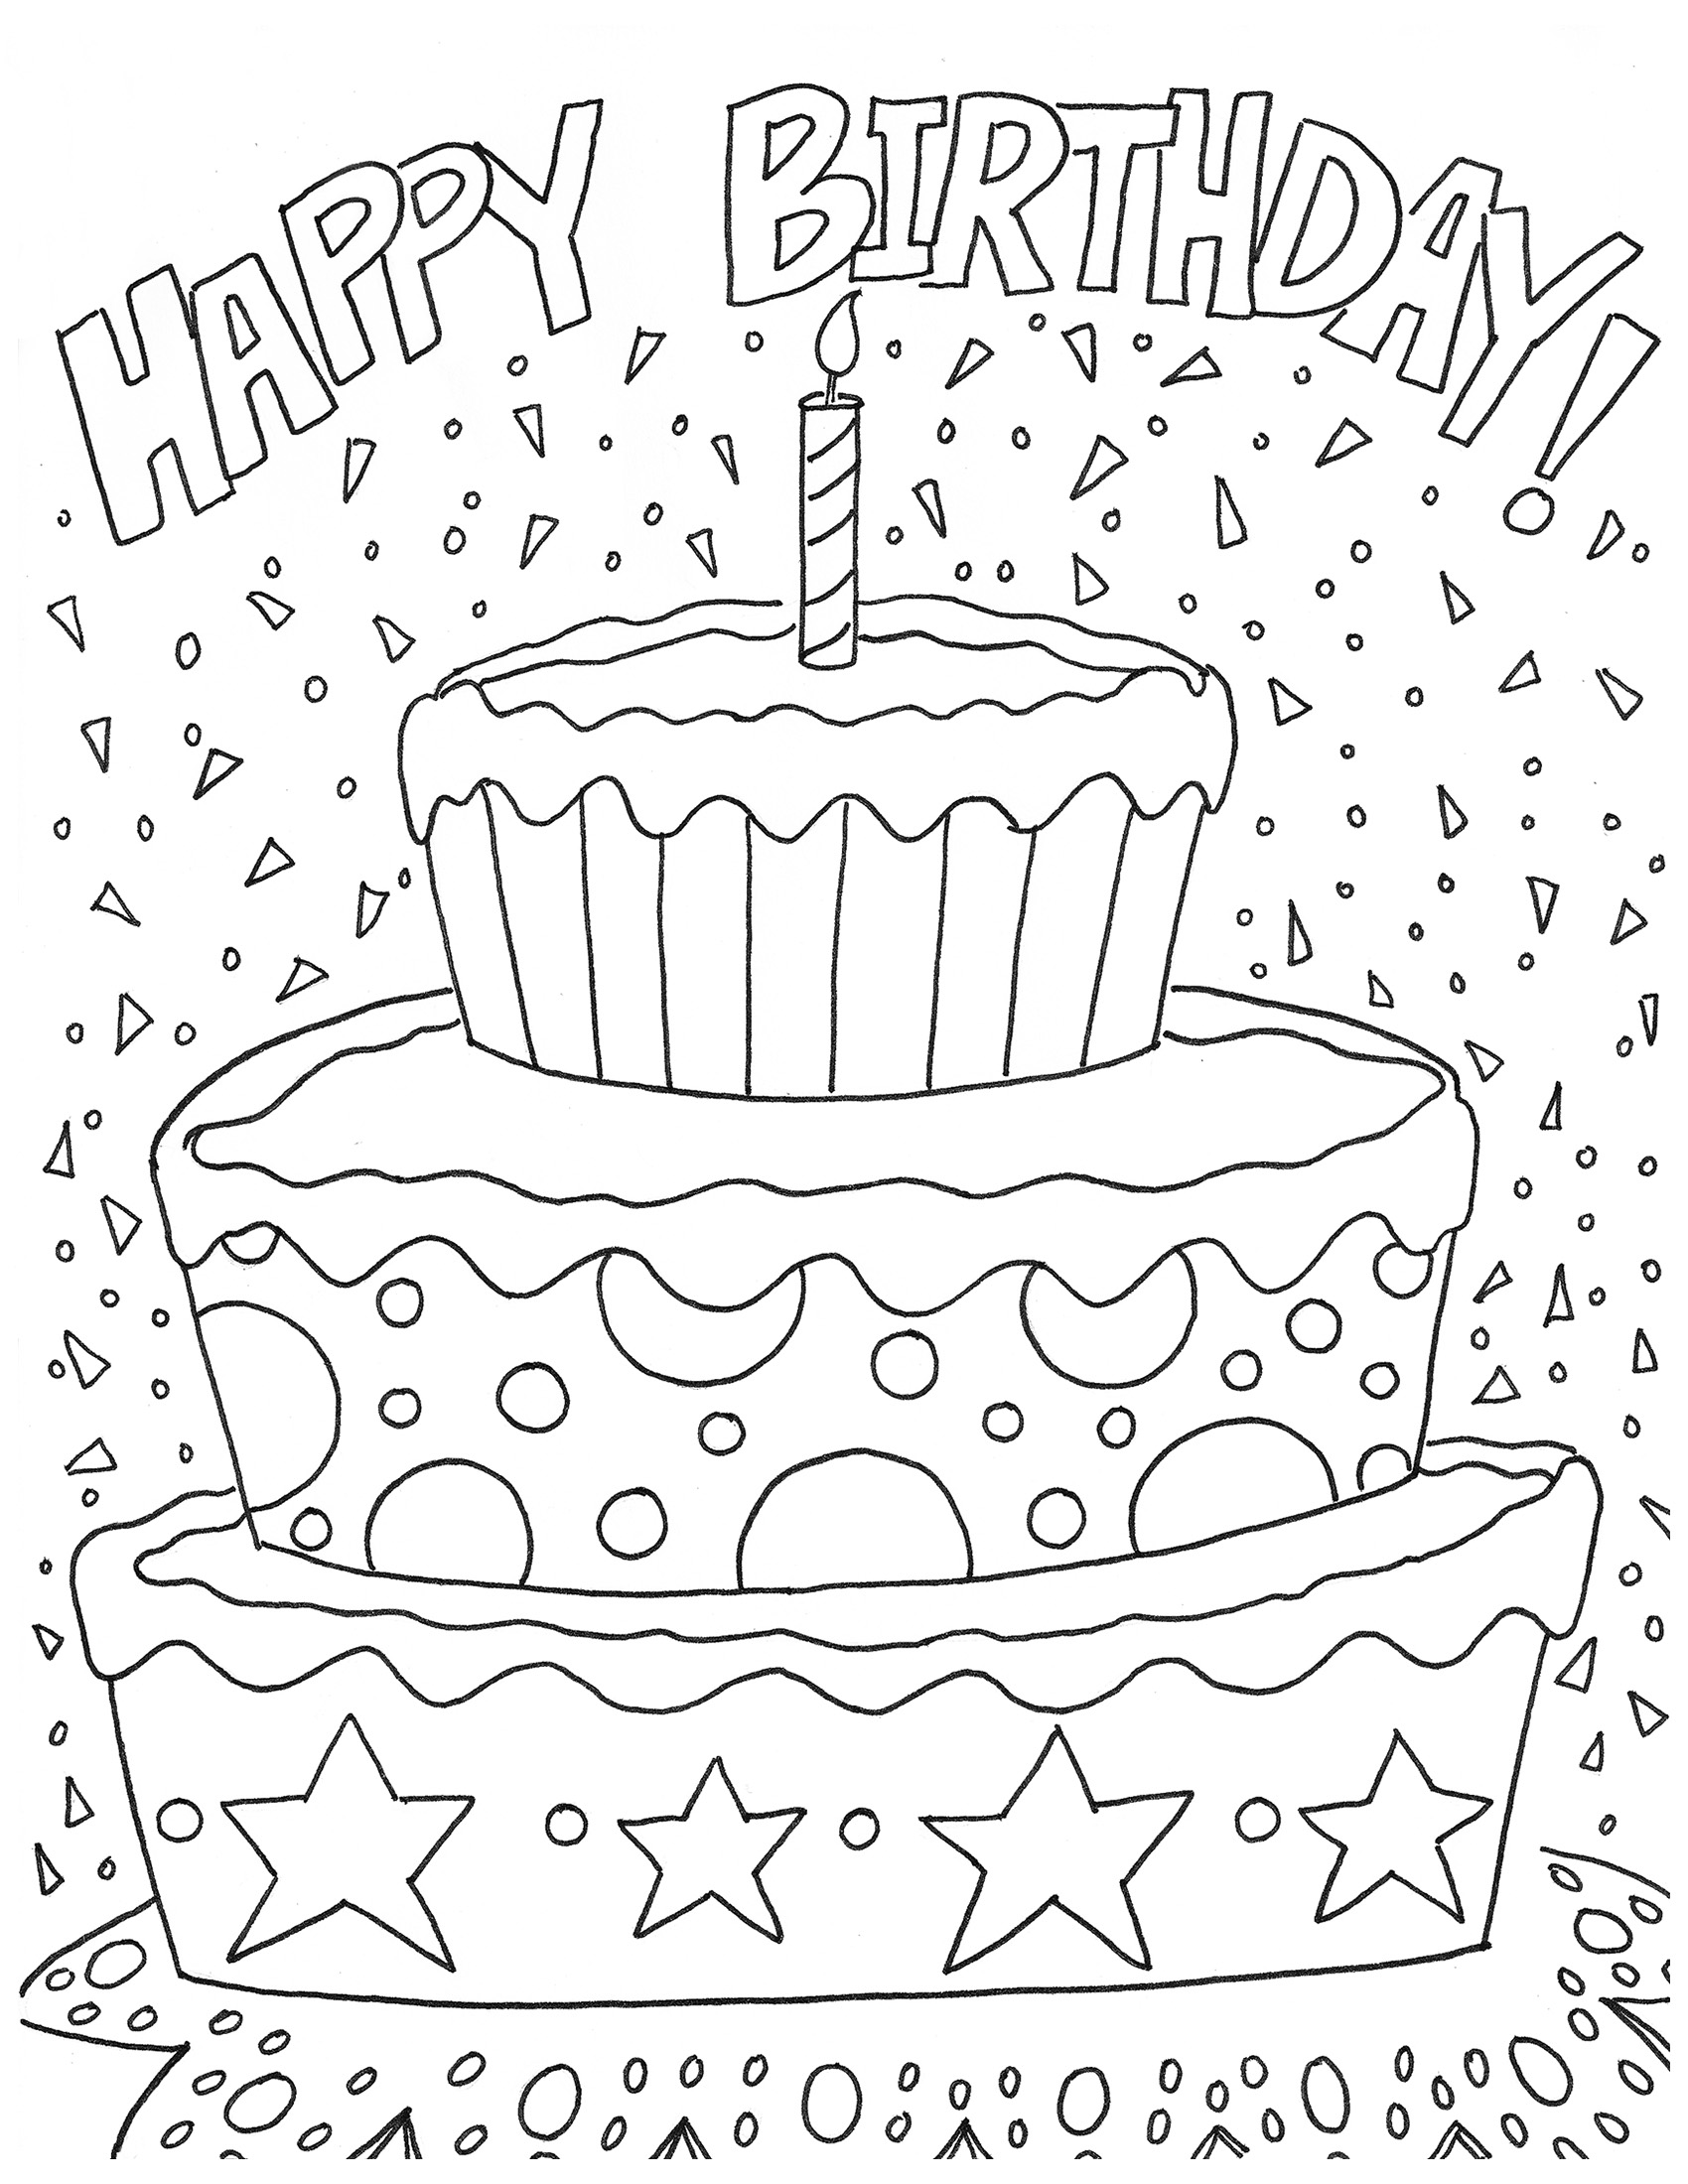 Paw patrol coloring pages happy birthday - Happy Birthday Dinosaur Coloring Pages Download And Print The Free Happy Birthday Coloring Page Here